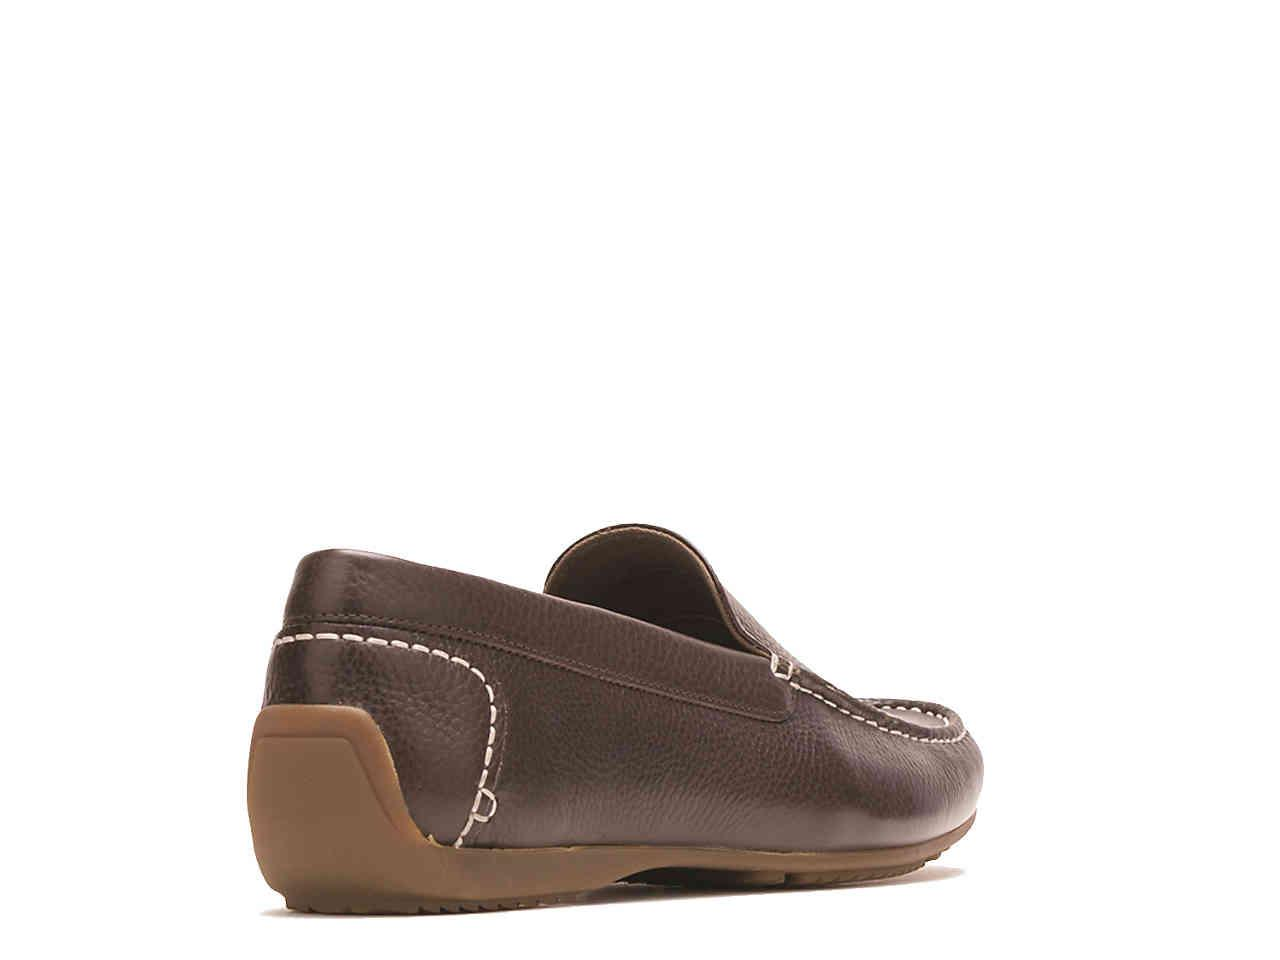 3223be0d22f Lyst - Hush Puppies Schnauzer Loafer in Brown for Men